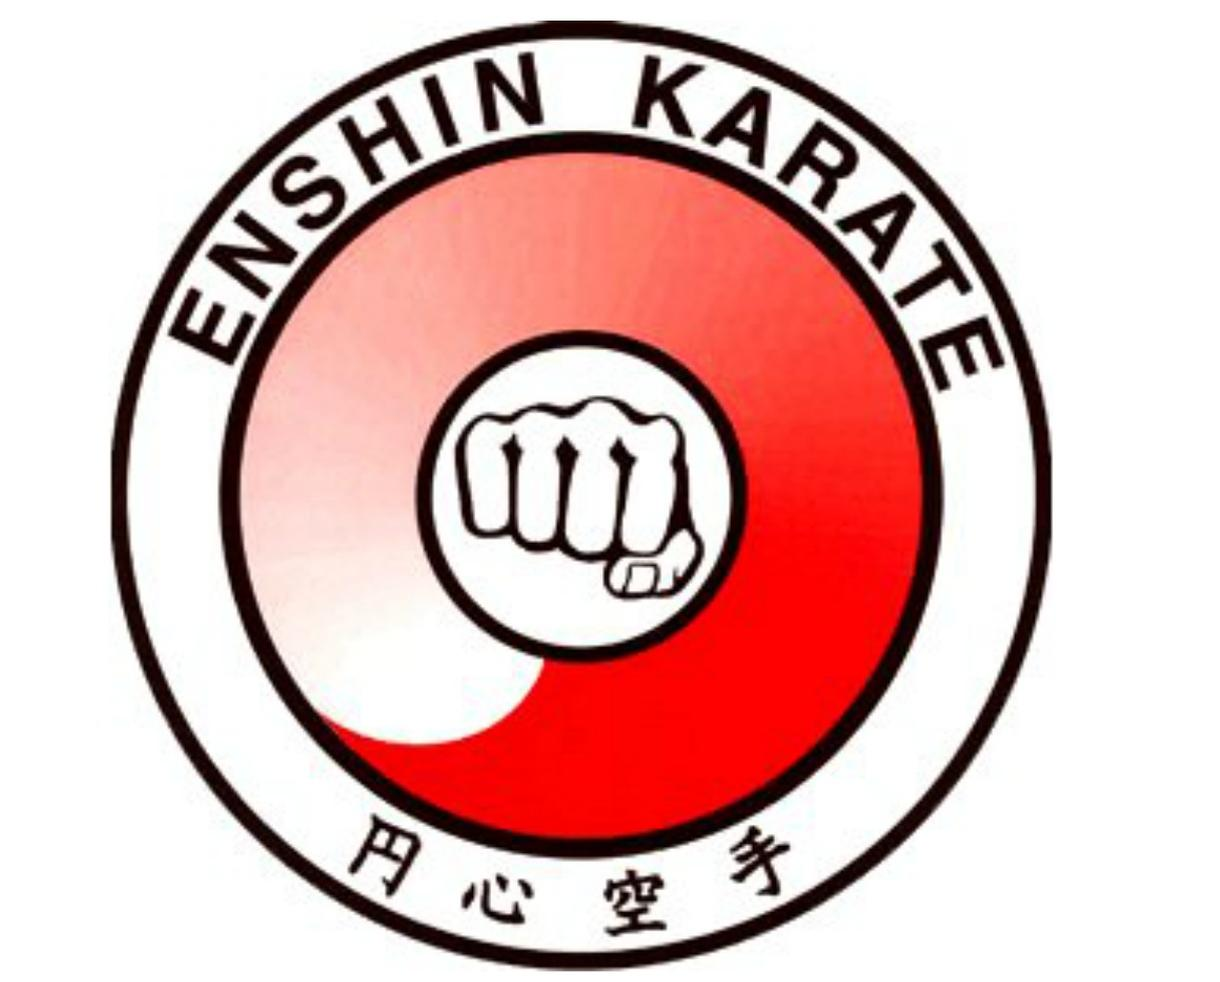 Enshin Karate Camp